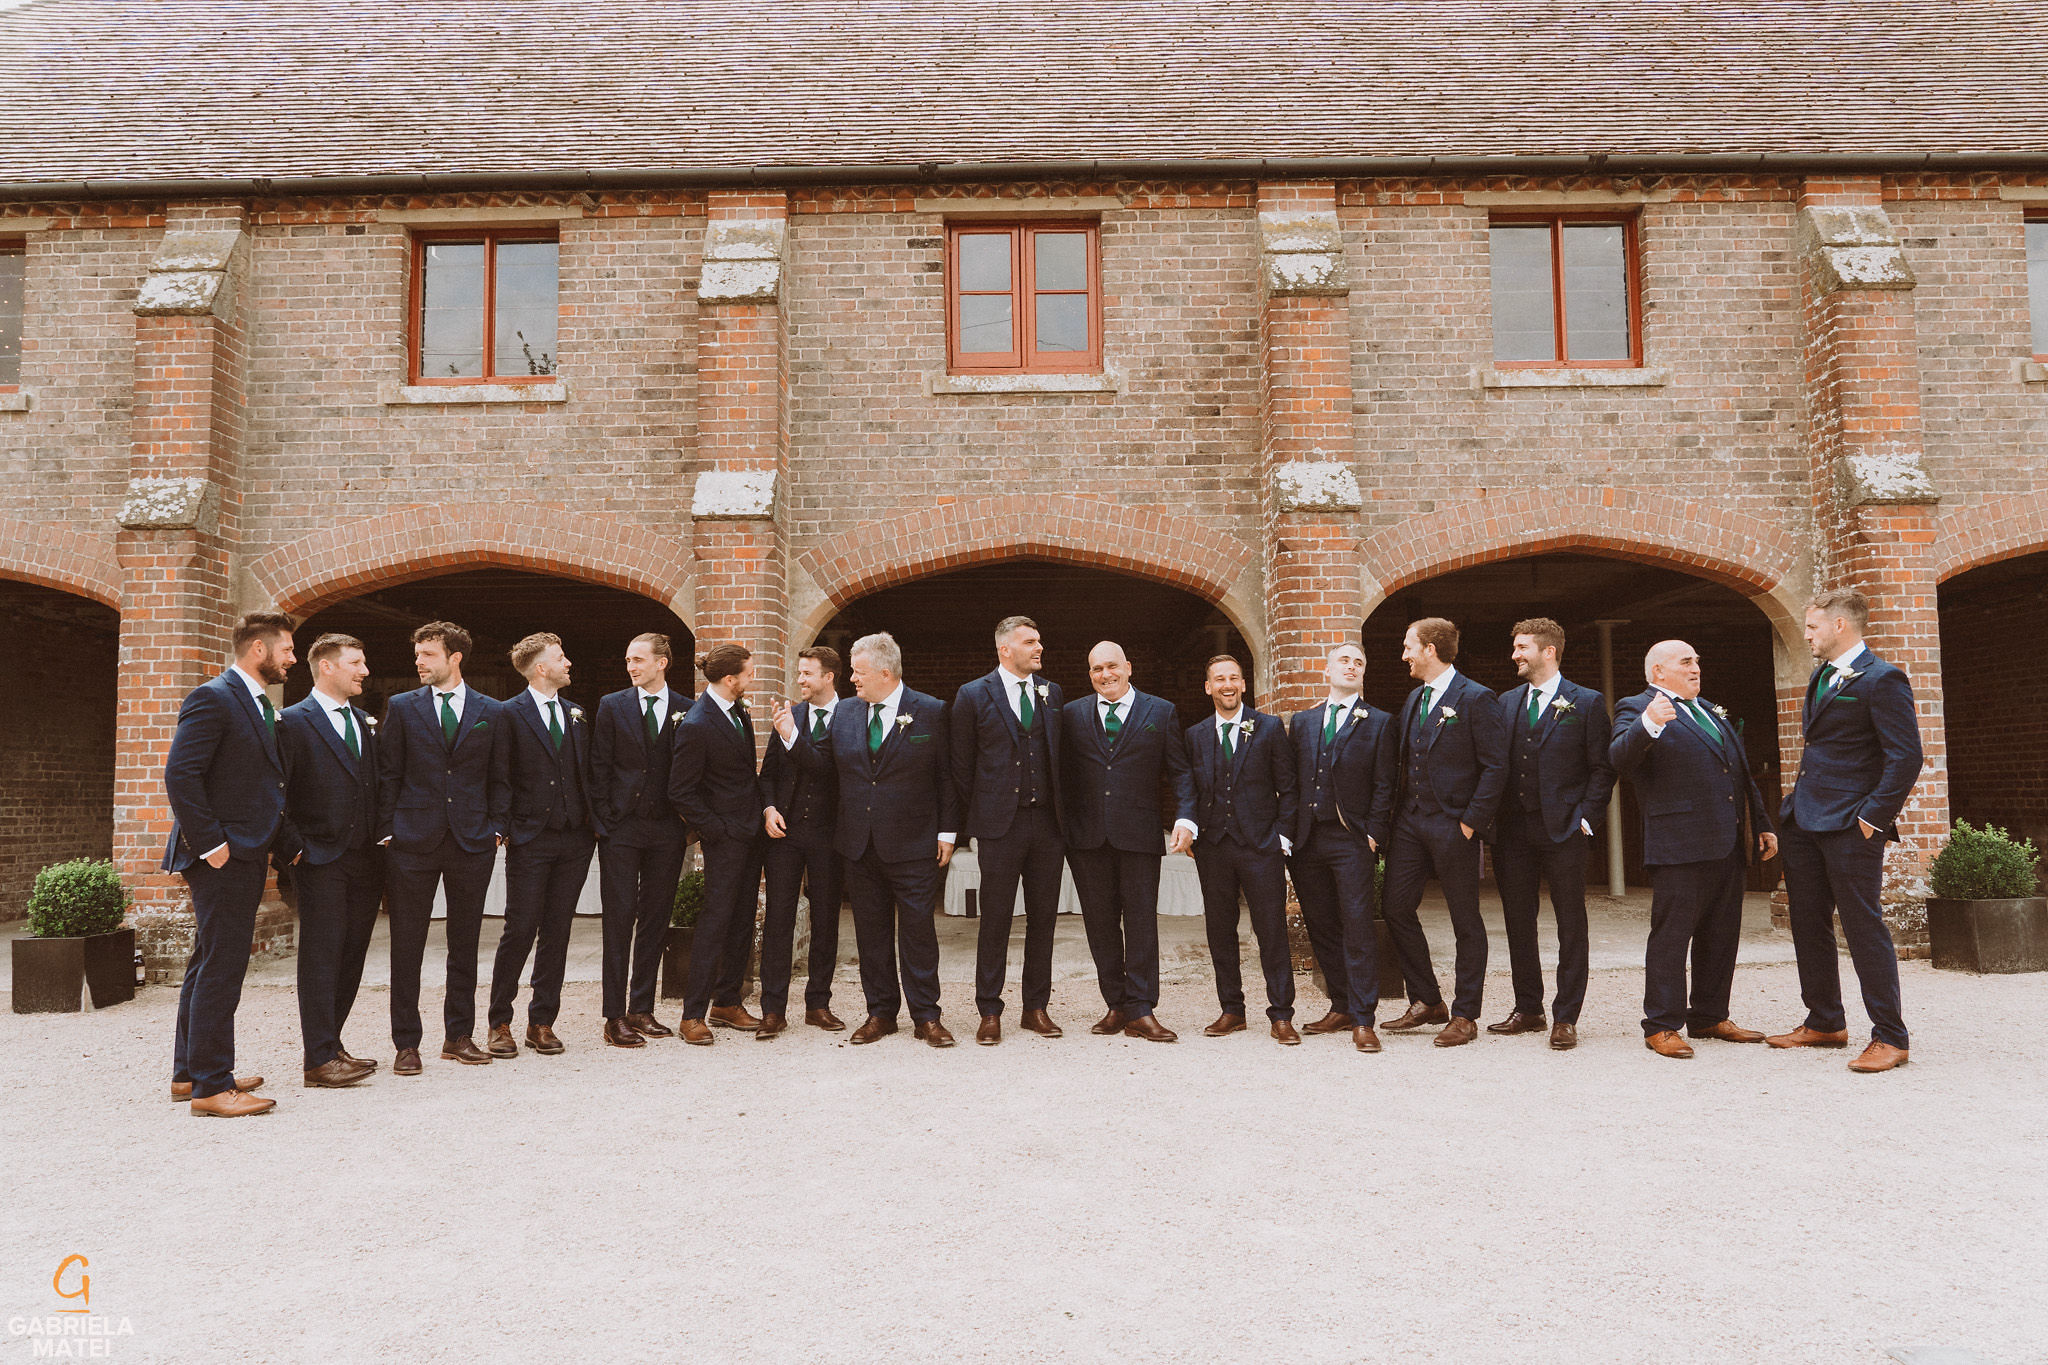 Groom and groomsmen at South Stoke Barn wedding venue in Arundel by gabriela matei sussex photographer